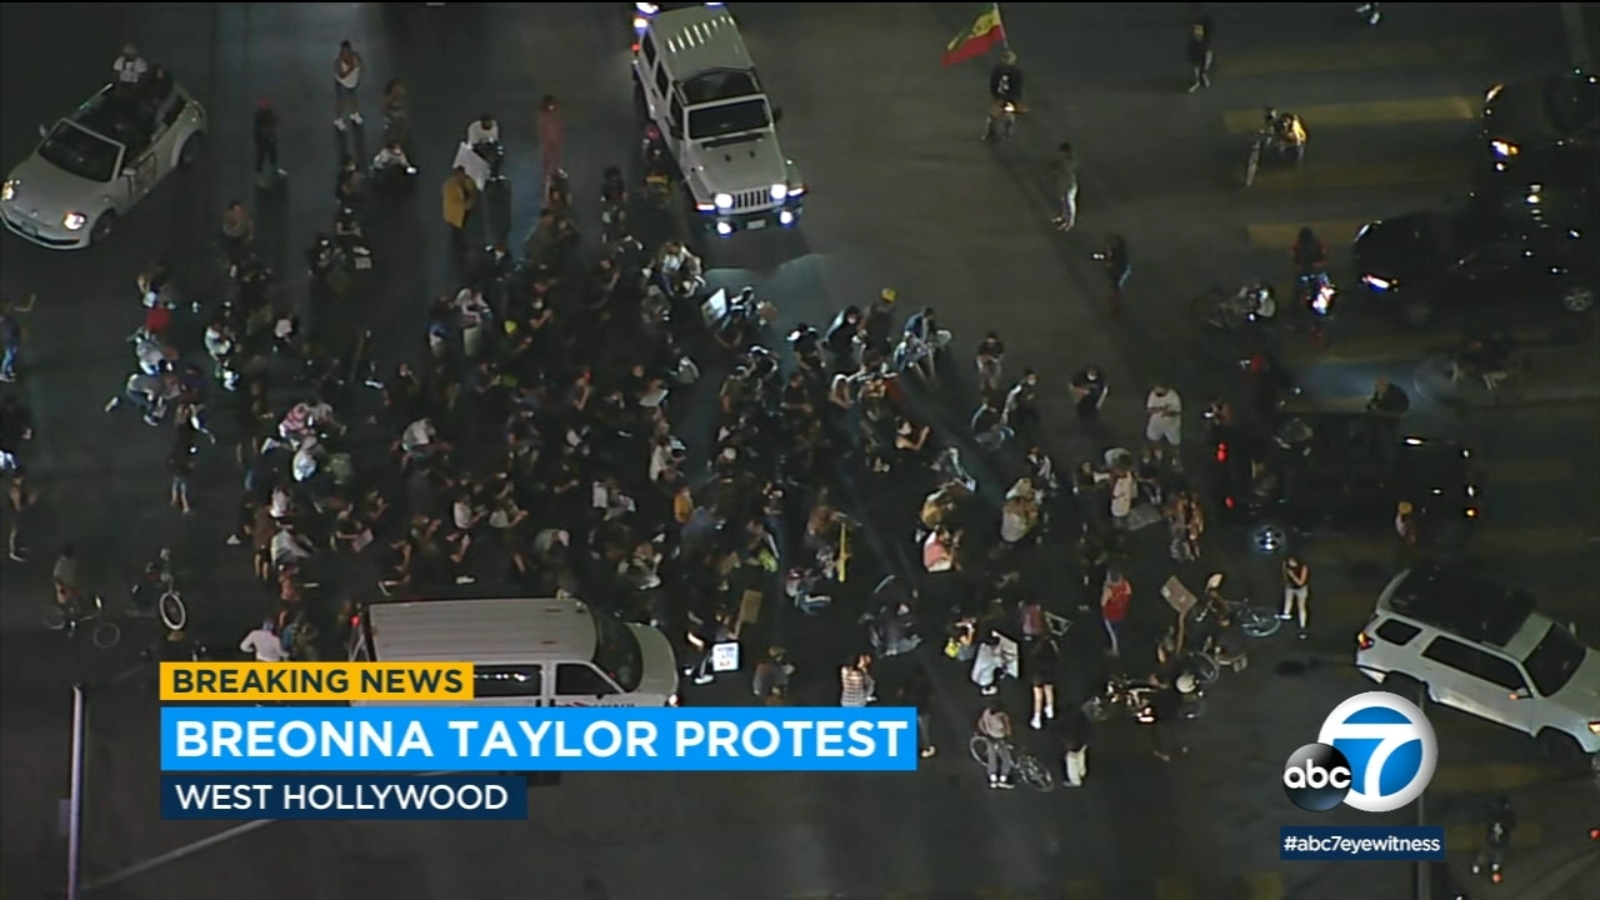 Breonna Taylor protesters march though streets of West Hollywood for third night